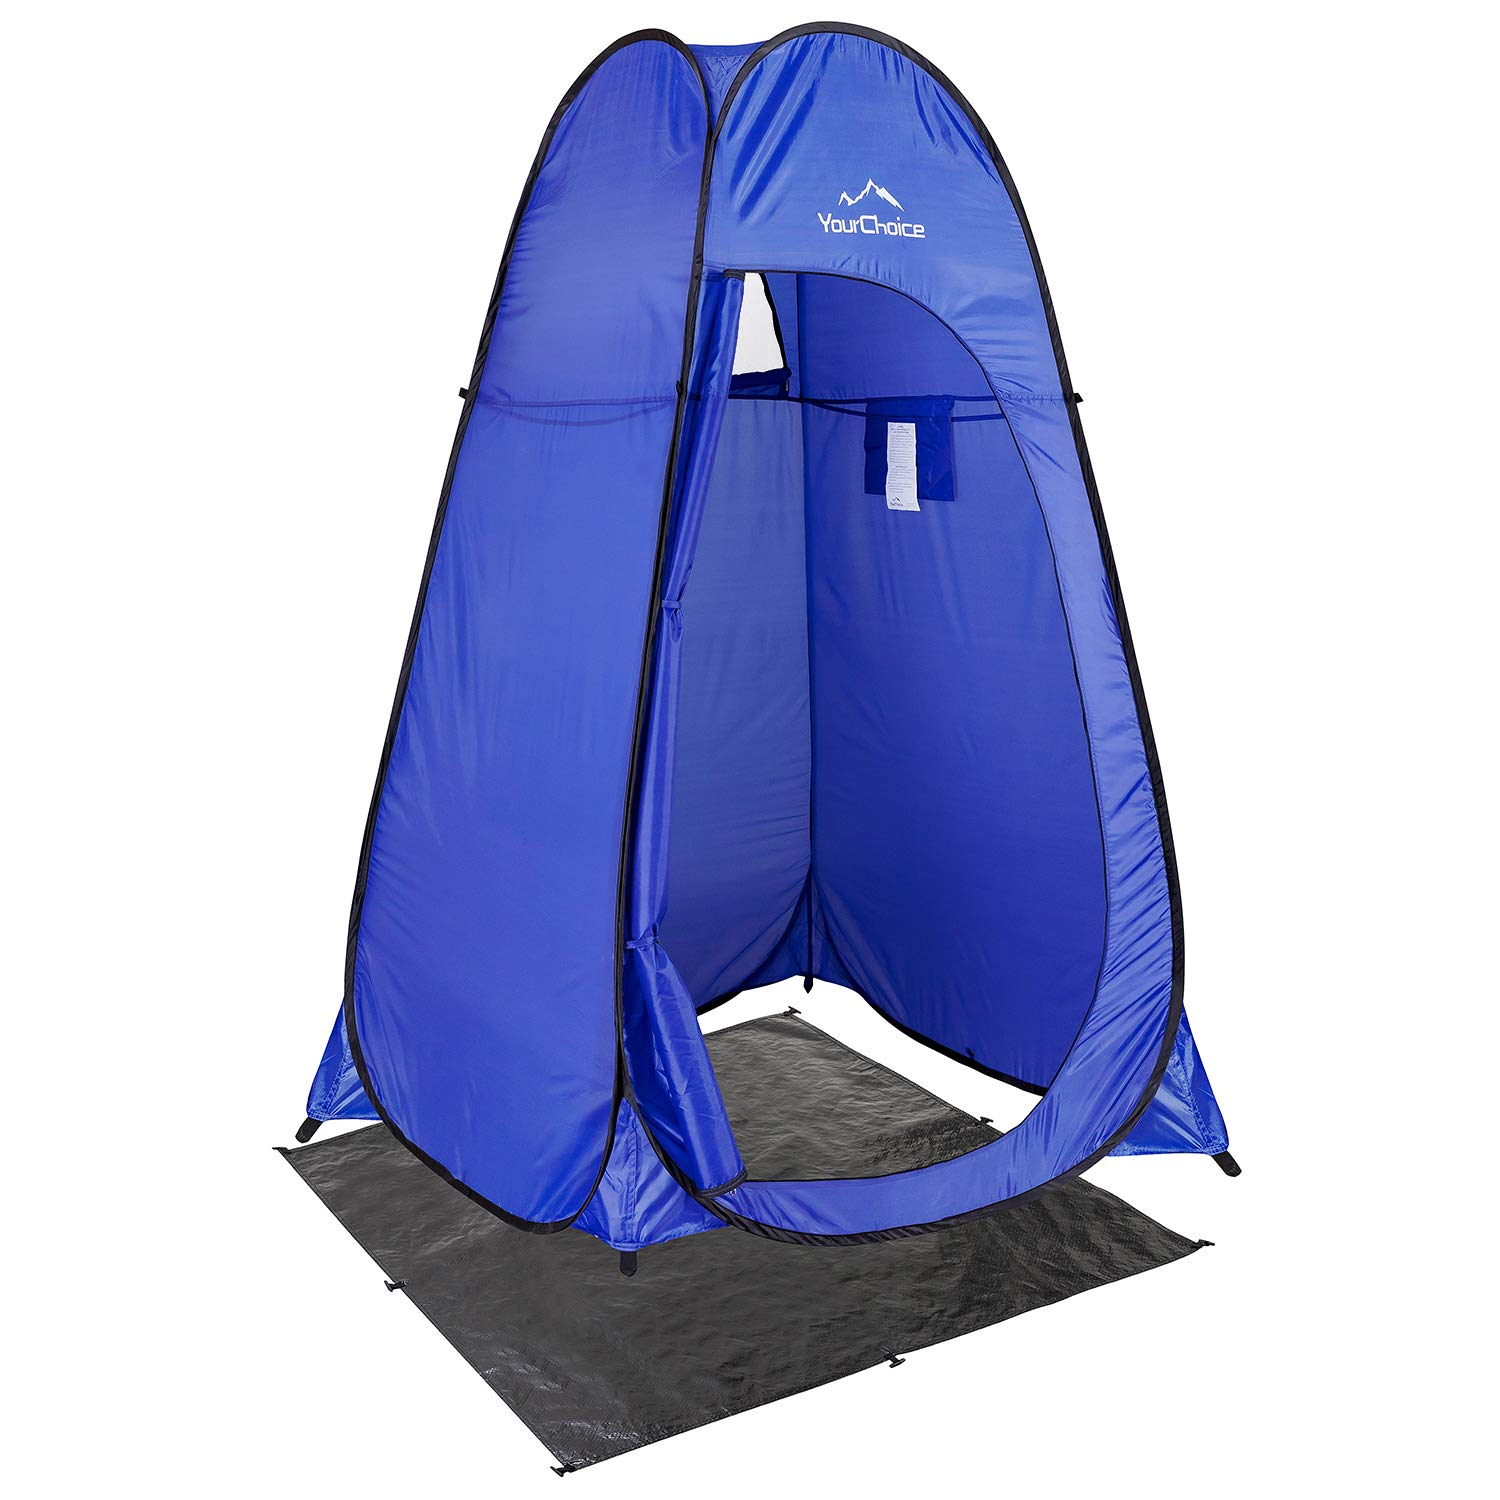 Your Choice Pop Up Tent, Portable Shower Toilet Changing Room Privacy Tent for Camping, Beach, Outdoor and Indoor - Color Blue by Your Choice